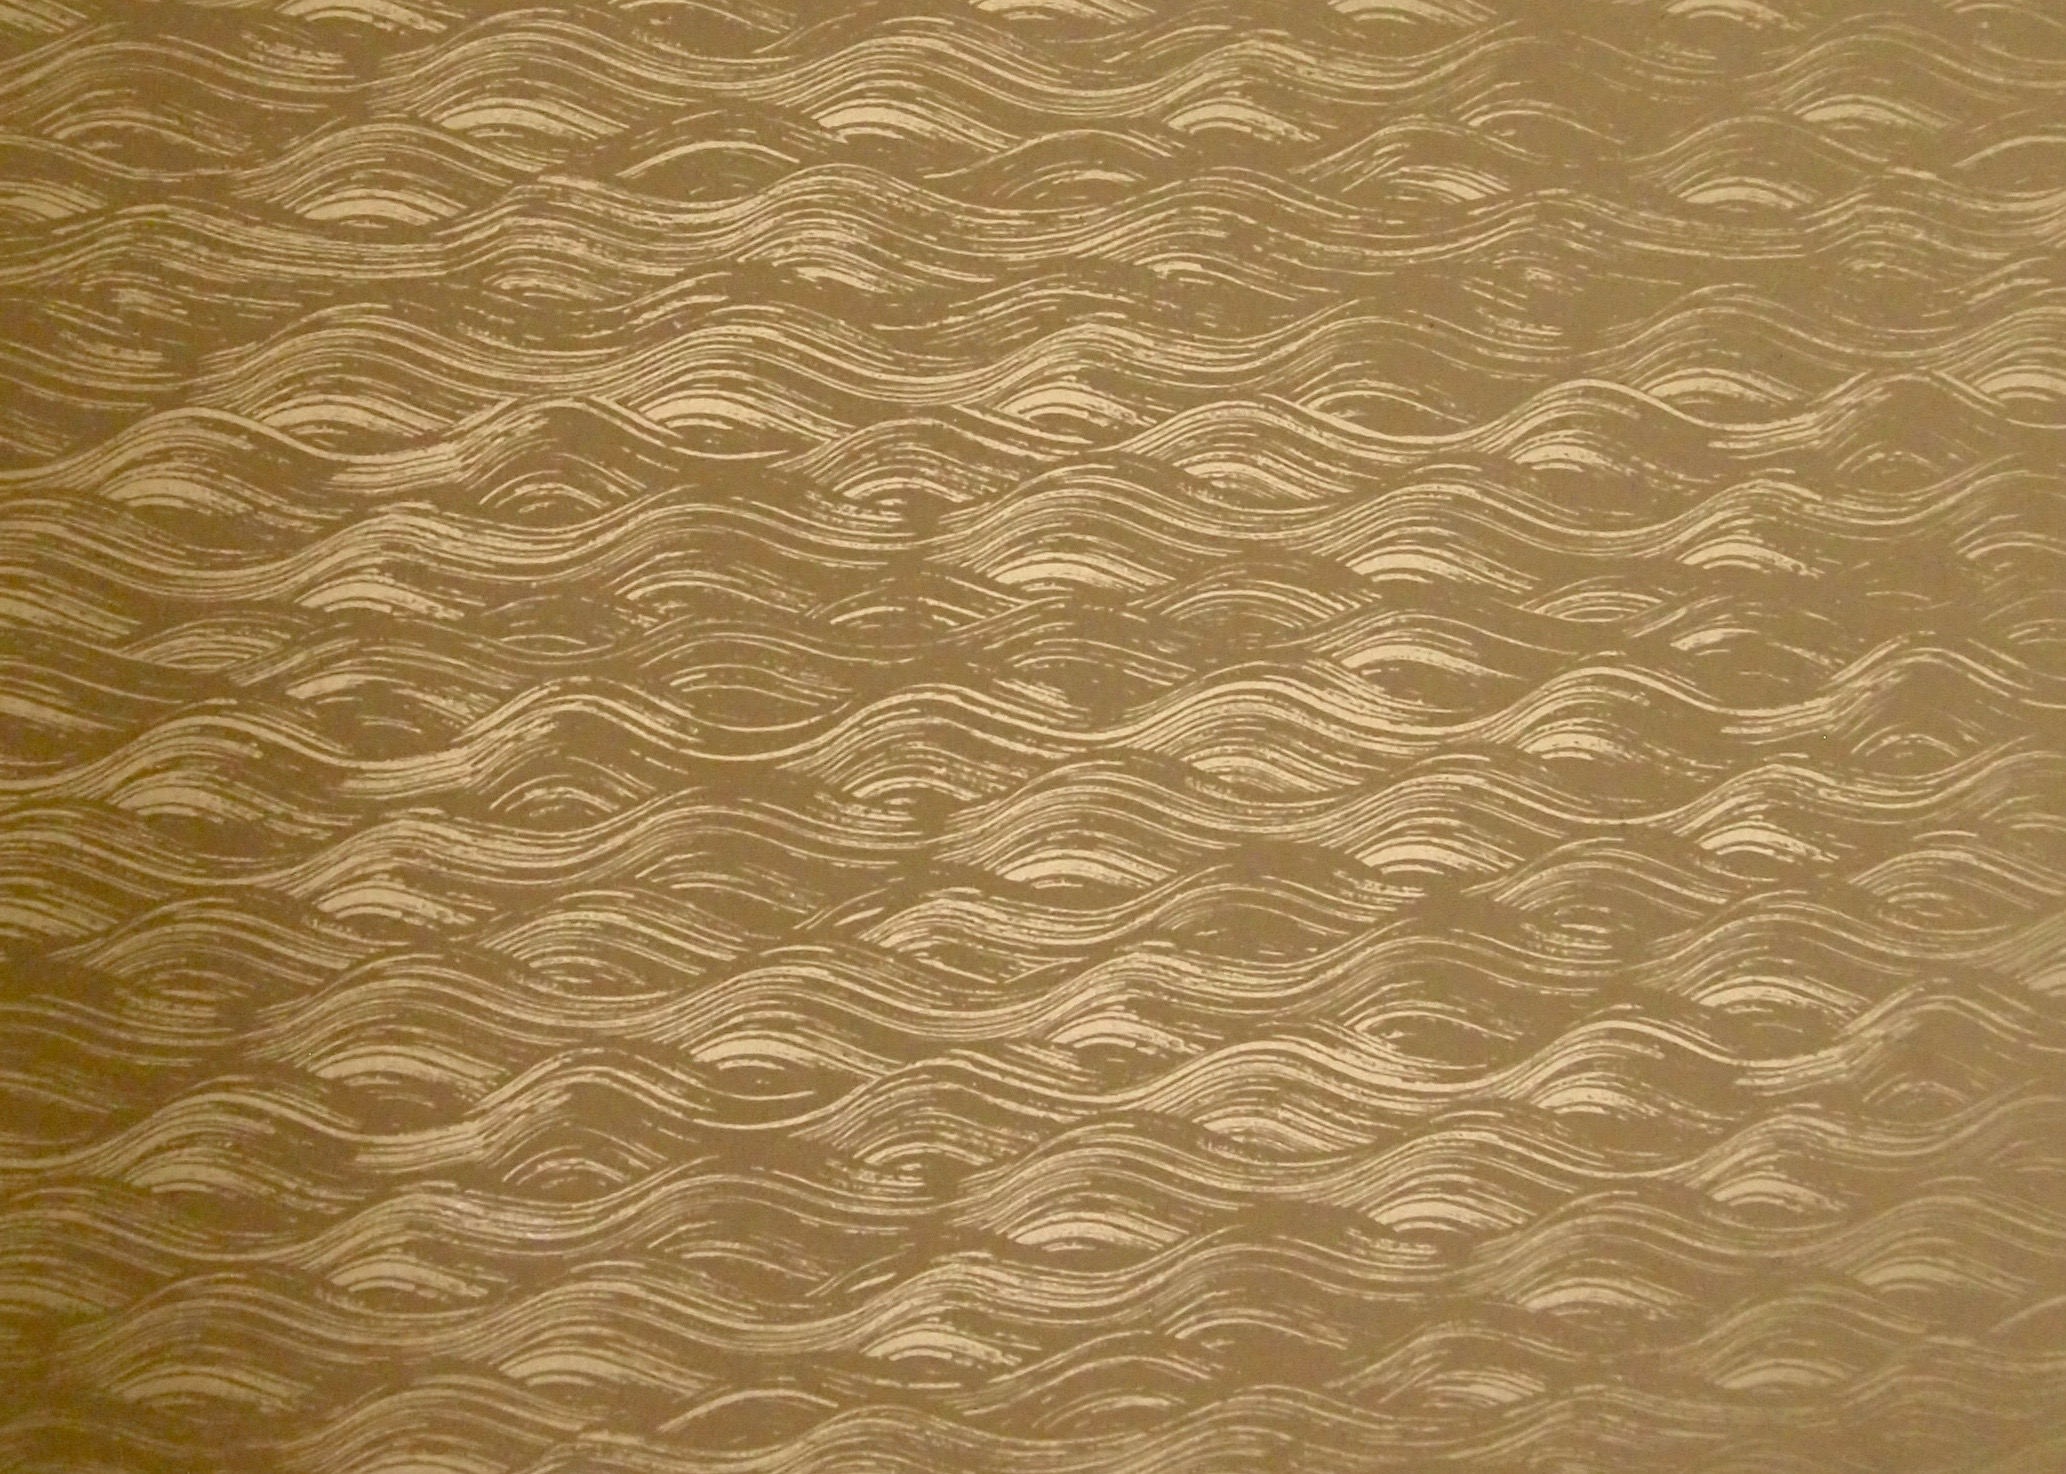 PAINTED WAVE I GOLD